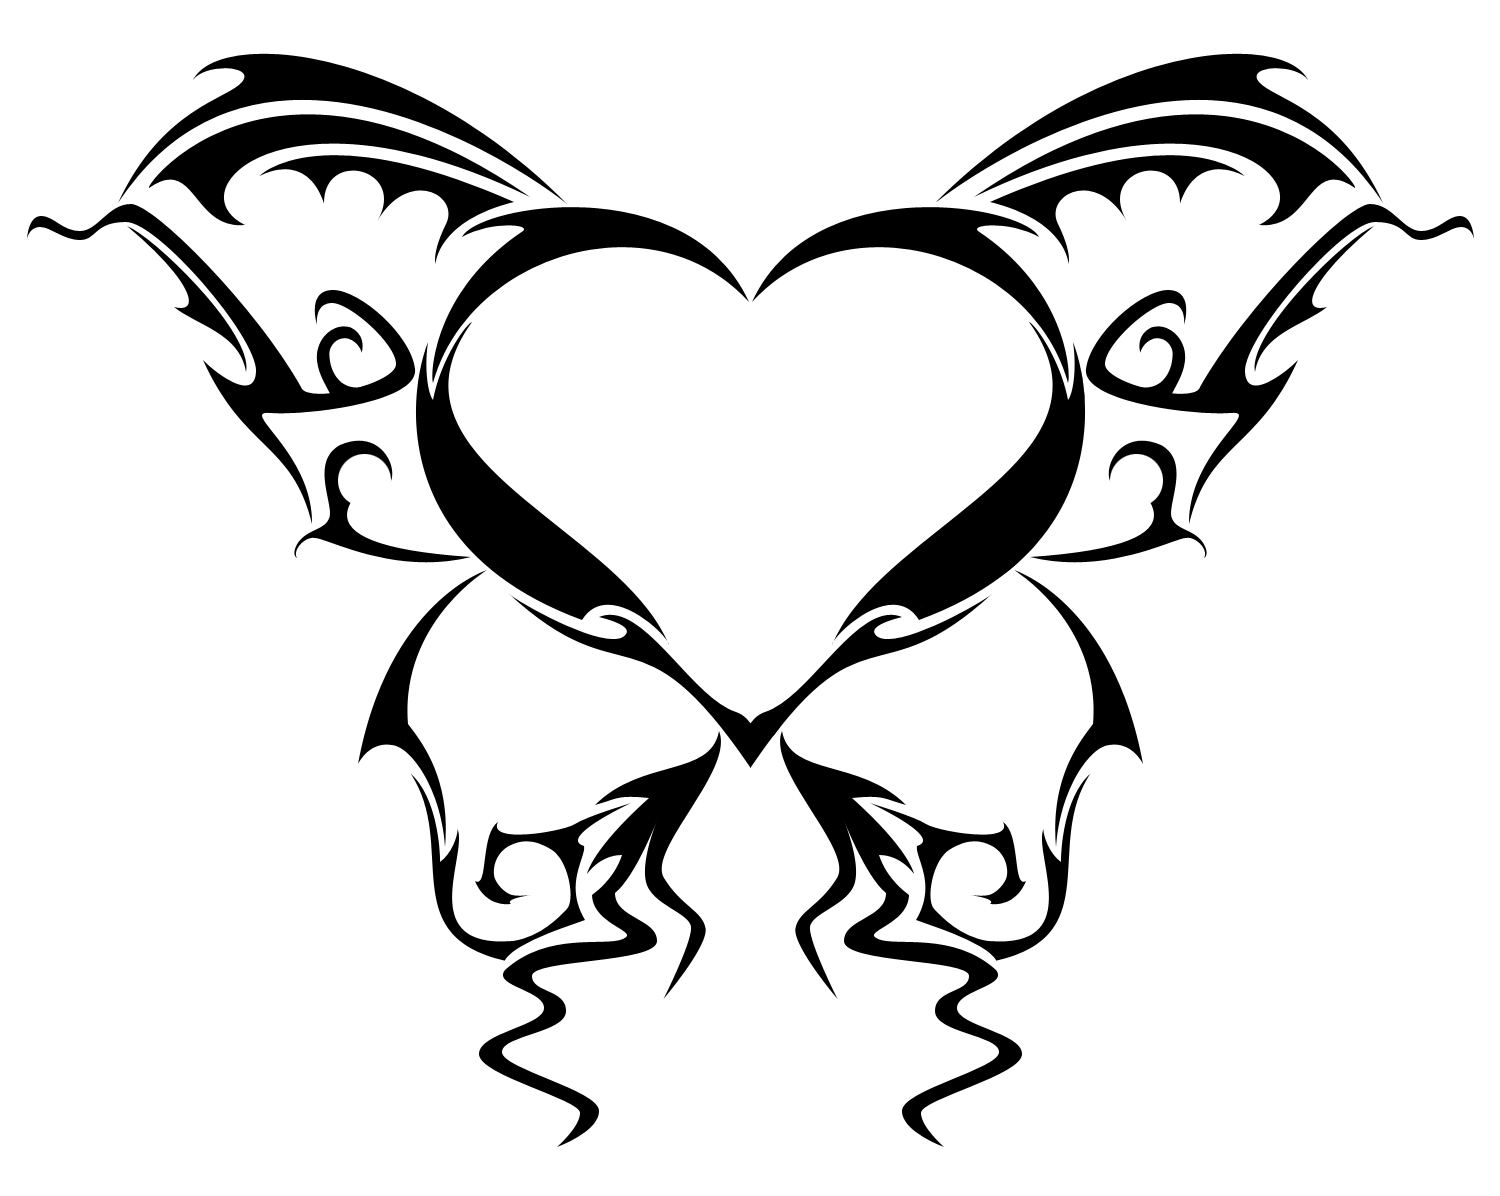 heart tattoos designs ideas and meaning tattoos for you. Black Bedroom Furniture Sets. Home Design Ideas